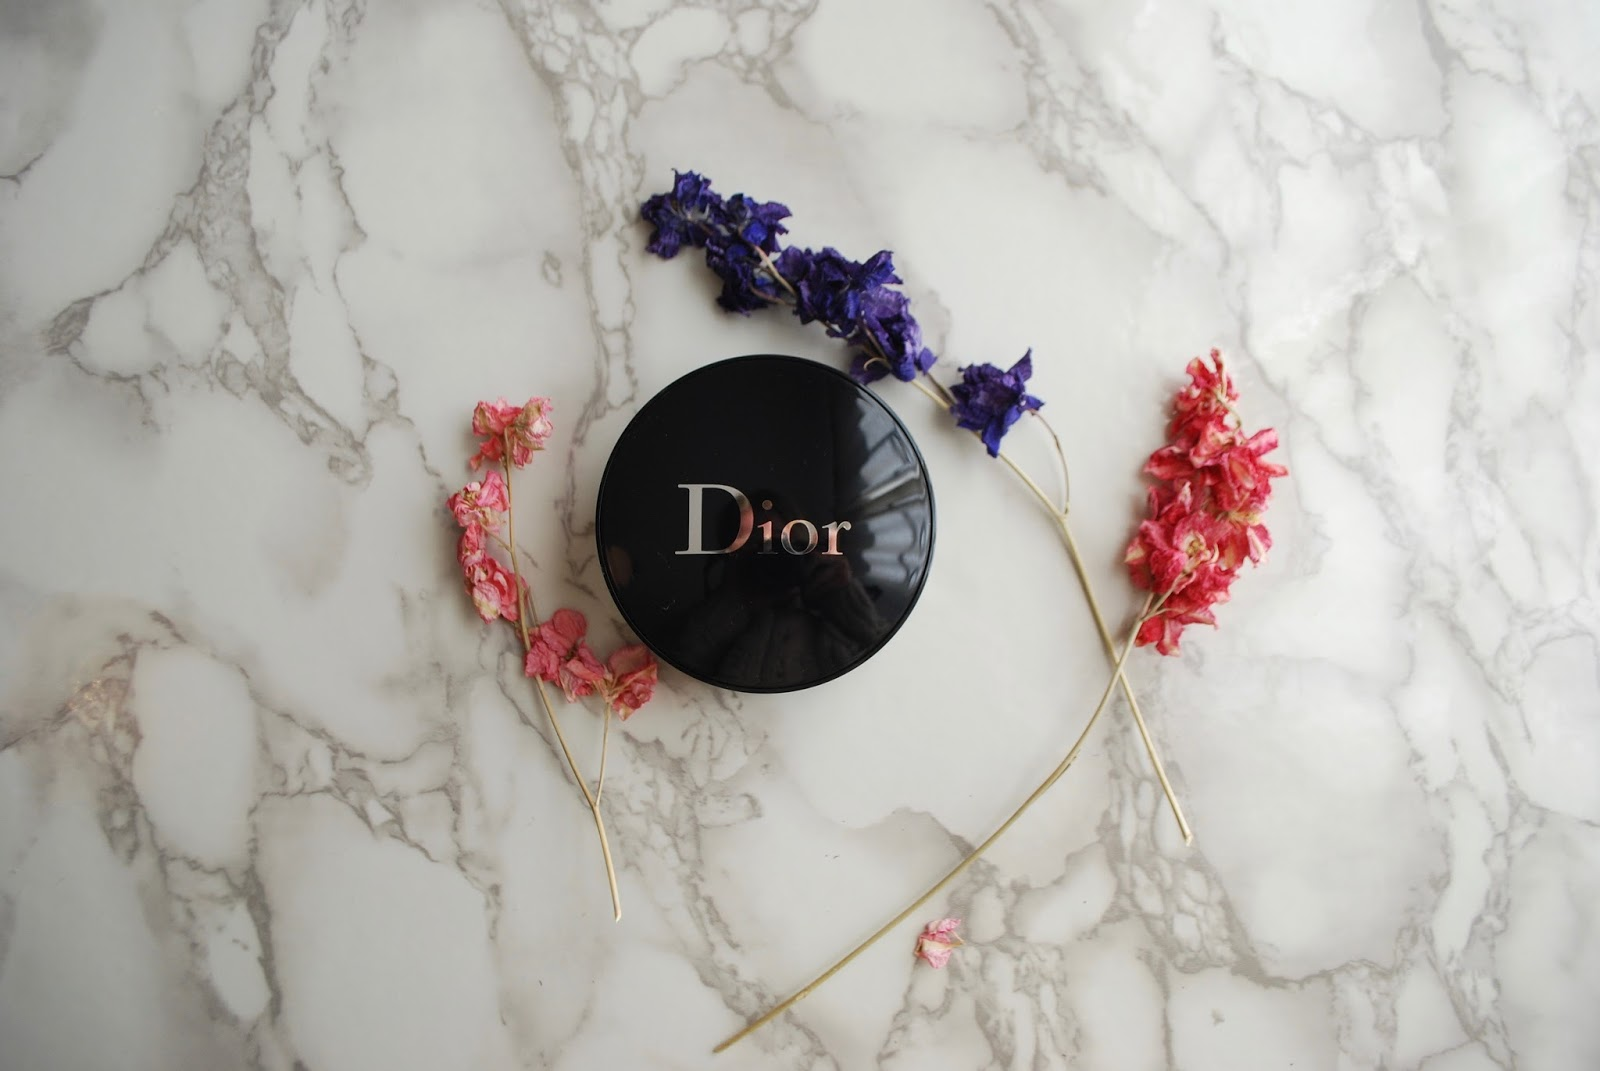 dior cushion foundation review